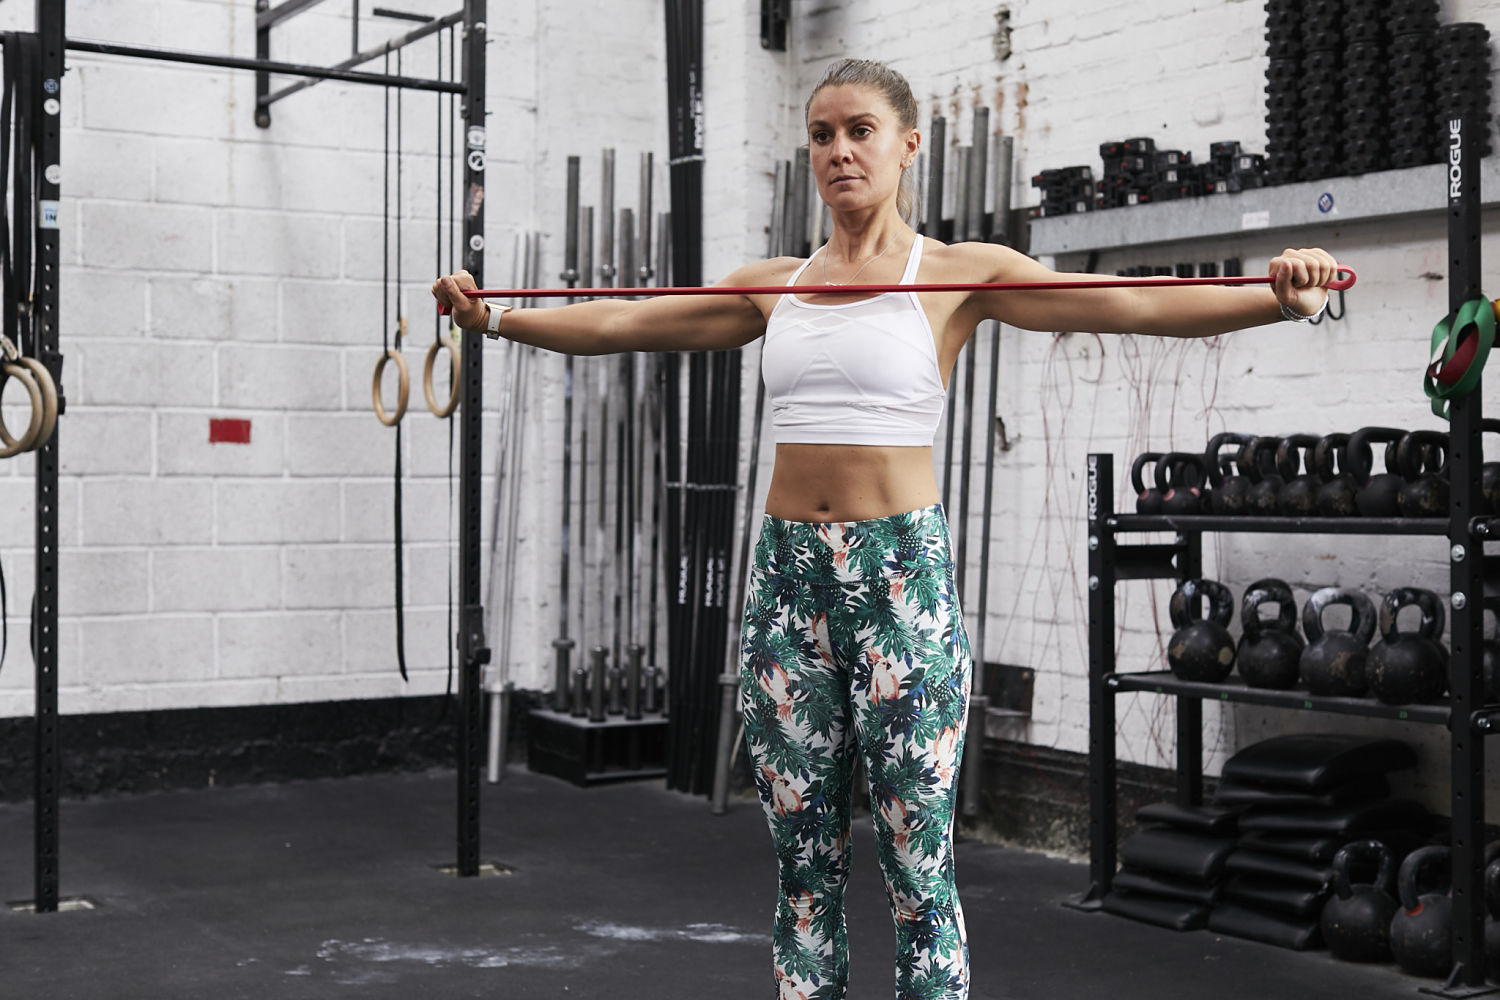 Band Scapular Retractions Front | Grace Brown Fitness London